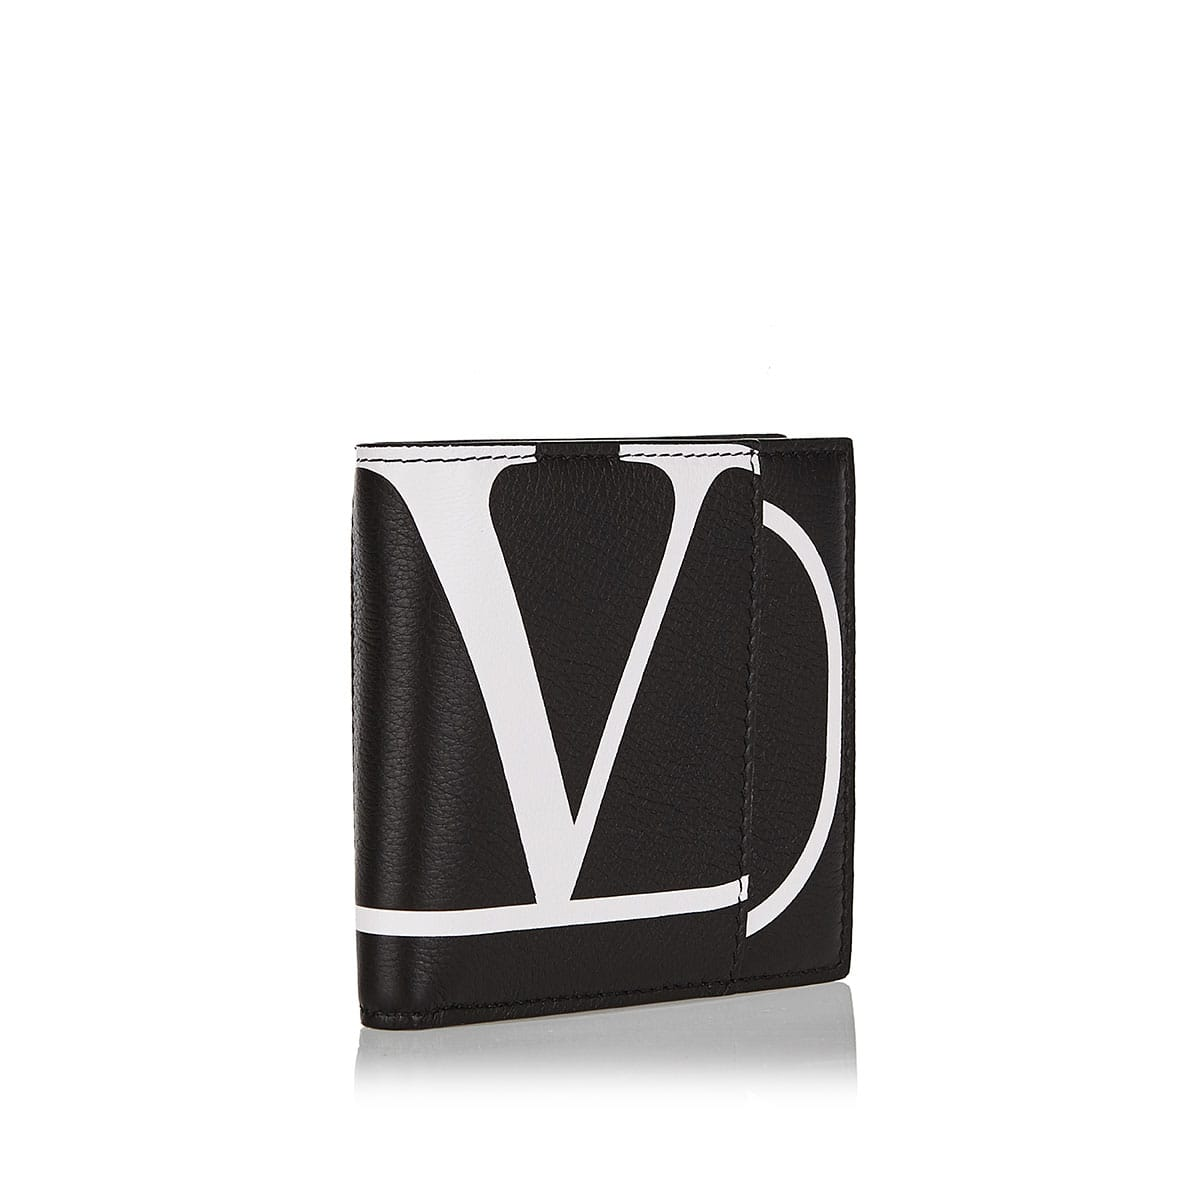 V-logo leather bi-fold wallet